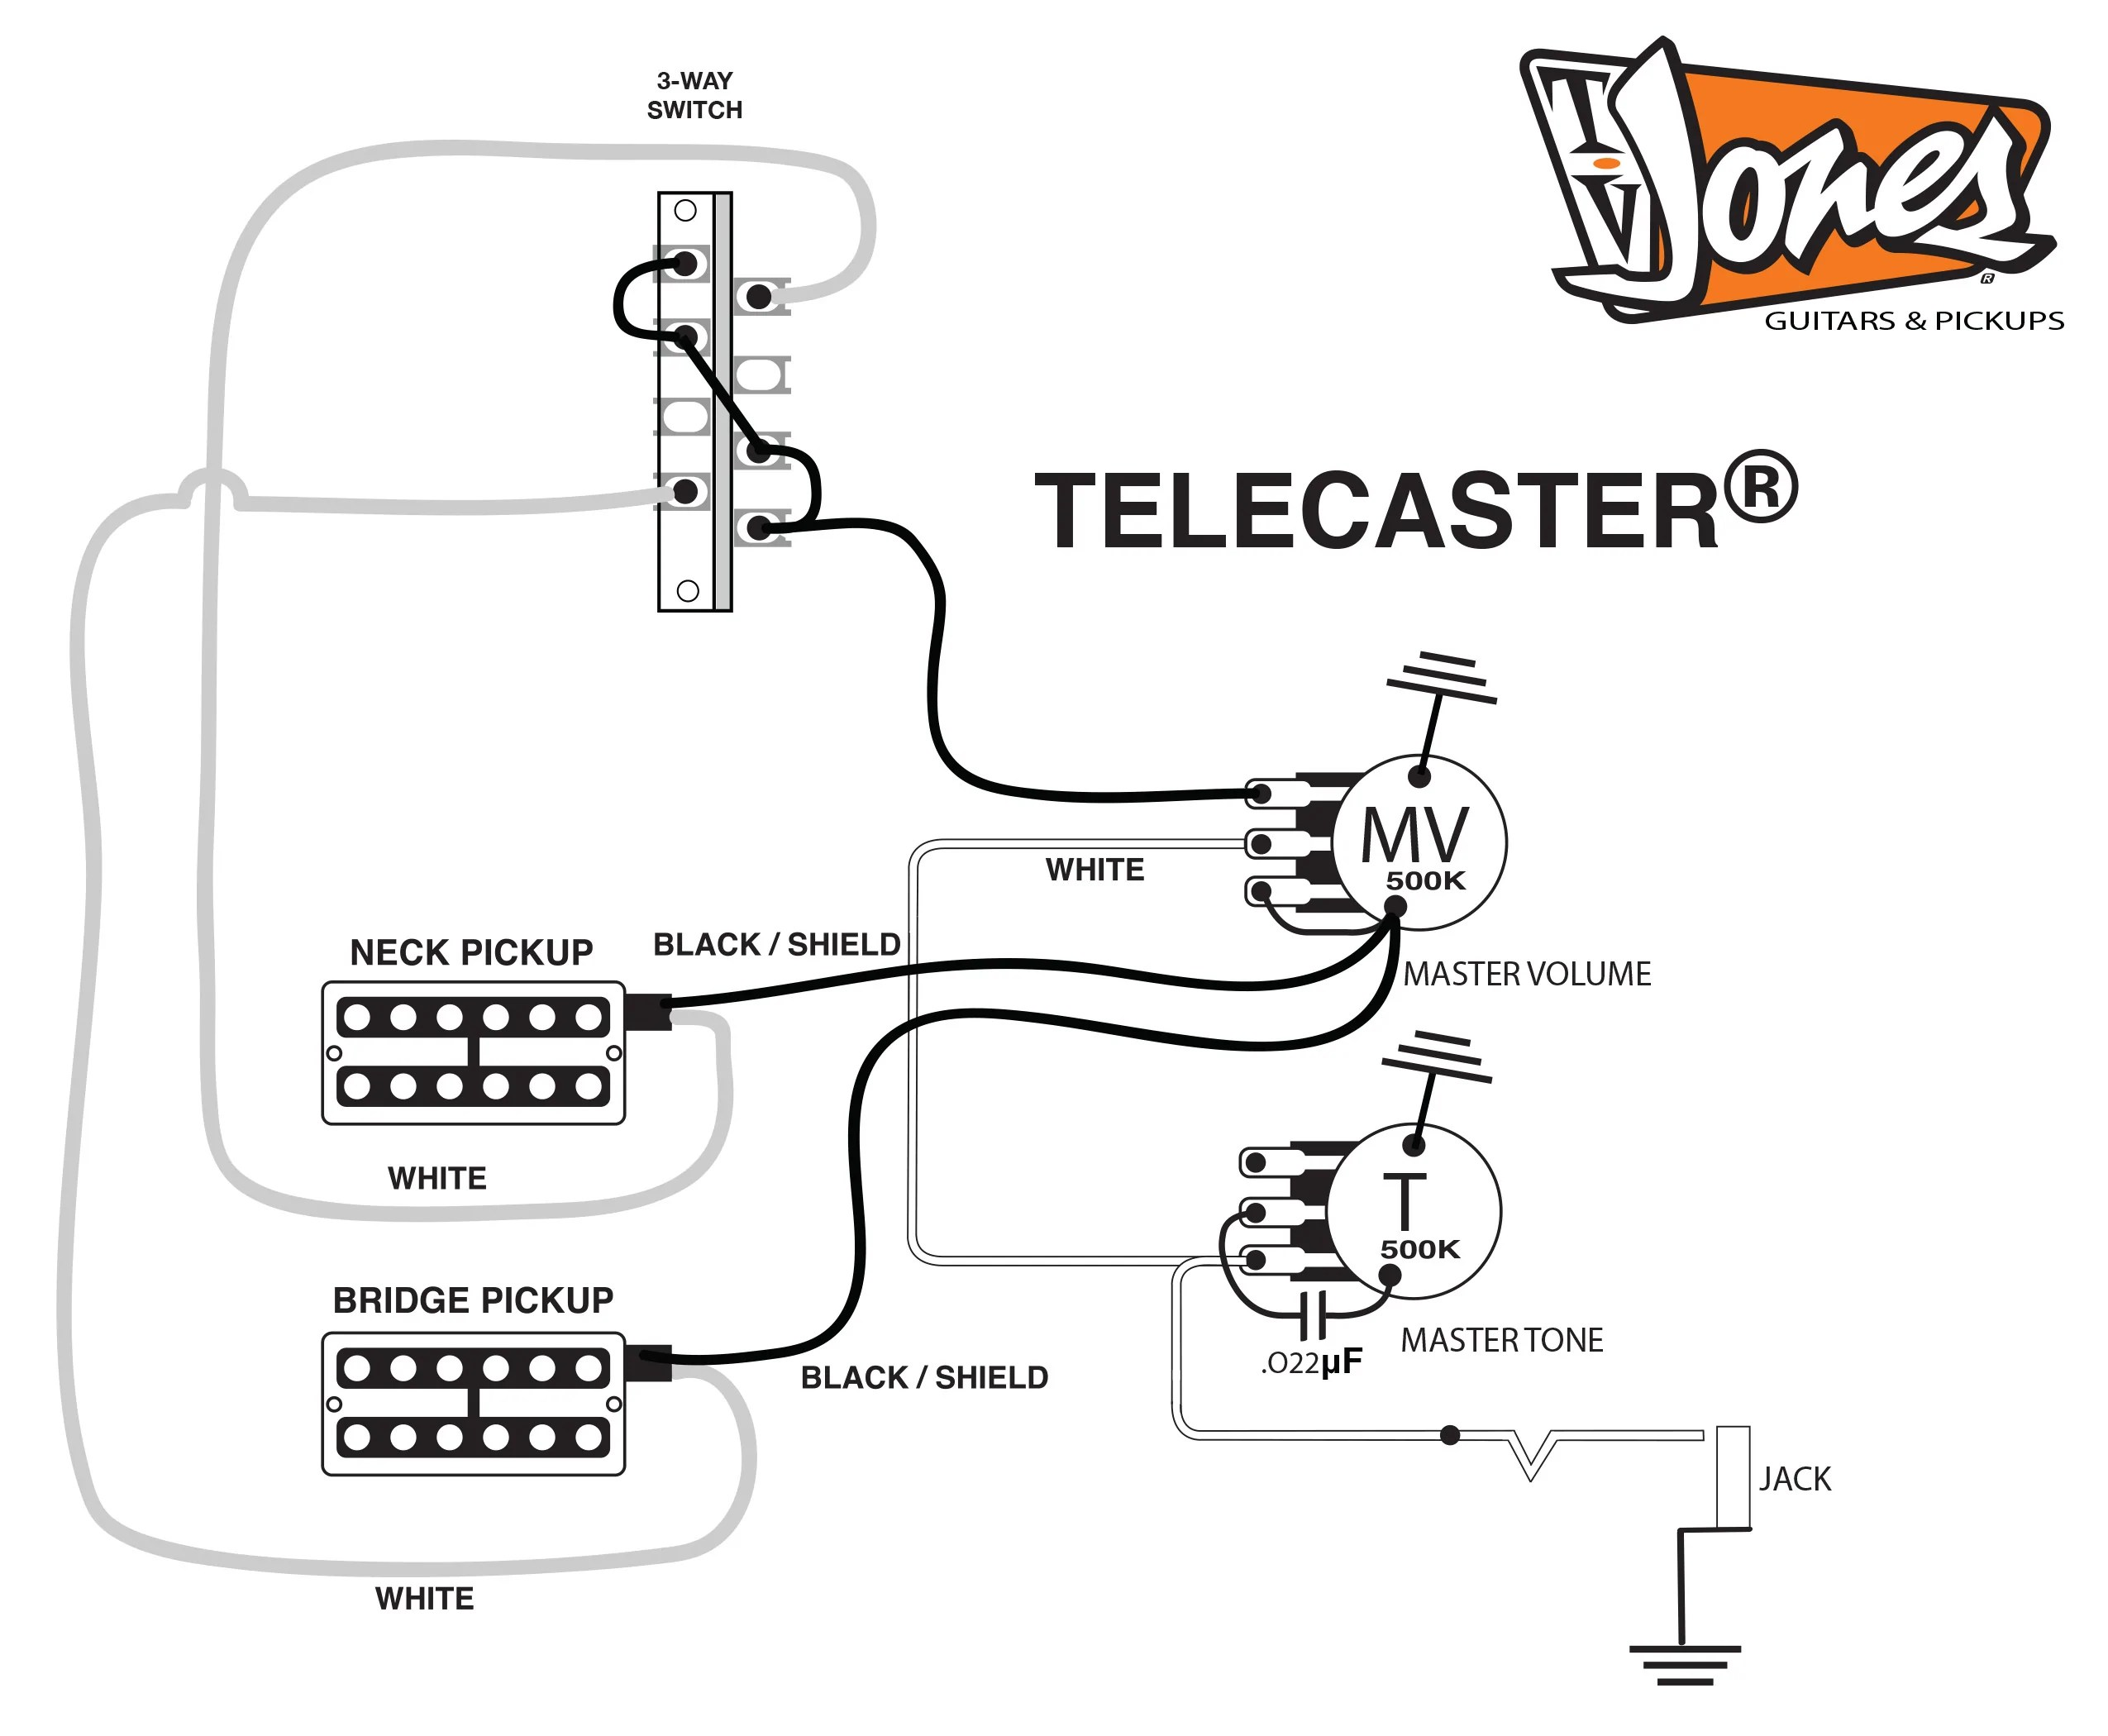 hight resolution of tv jones wiring diagram